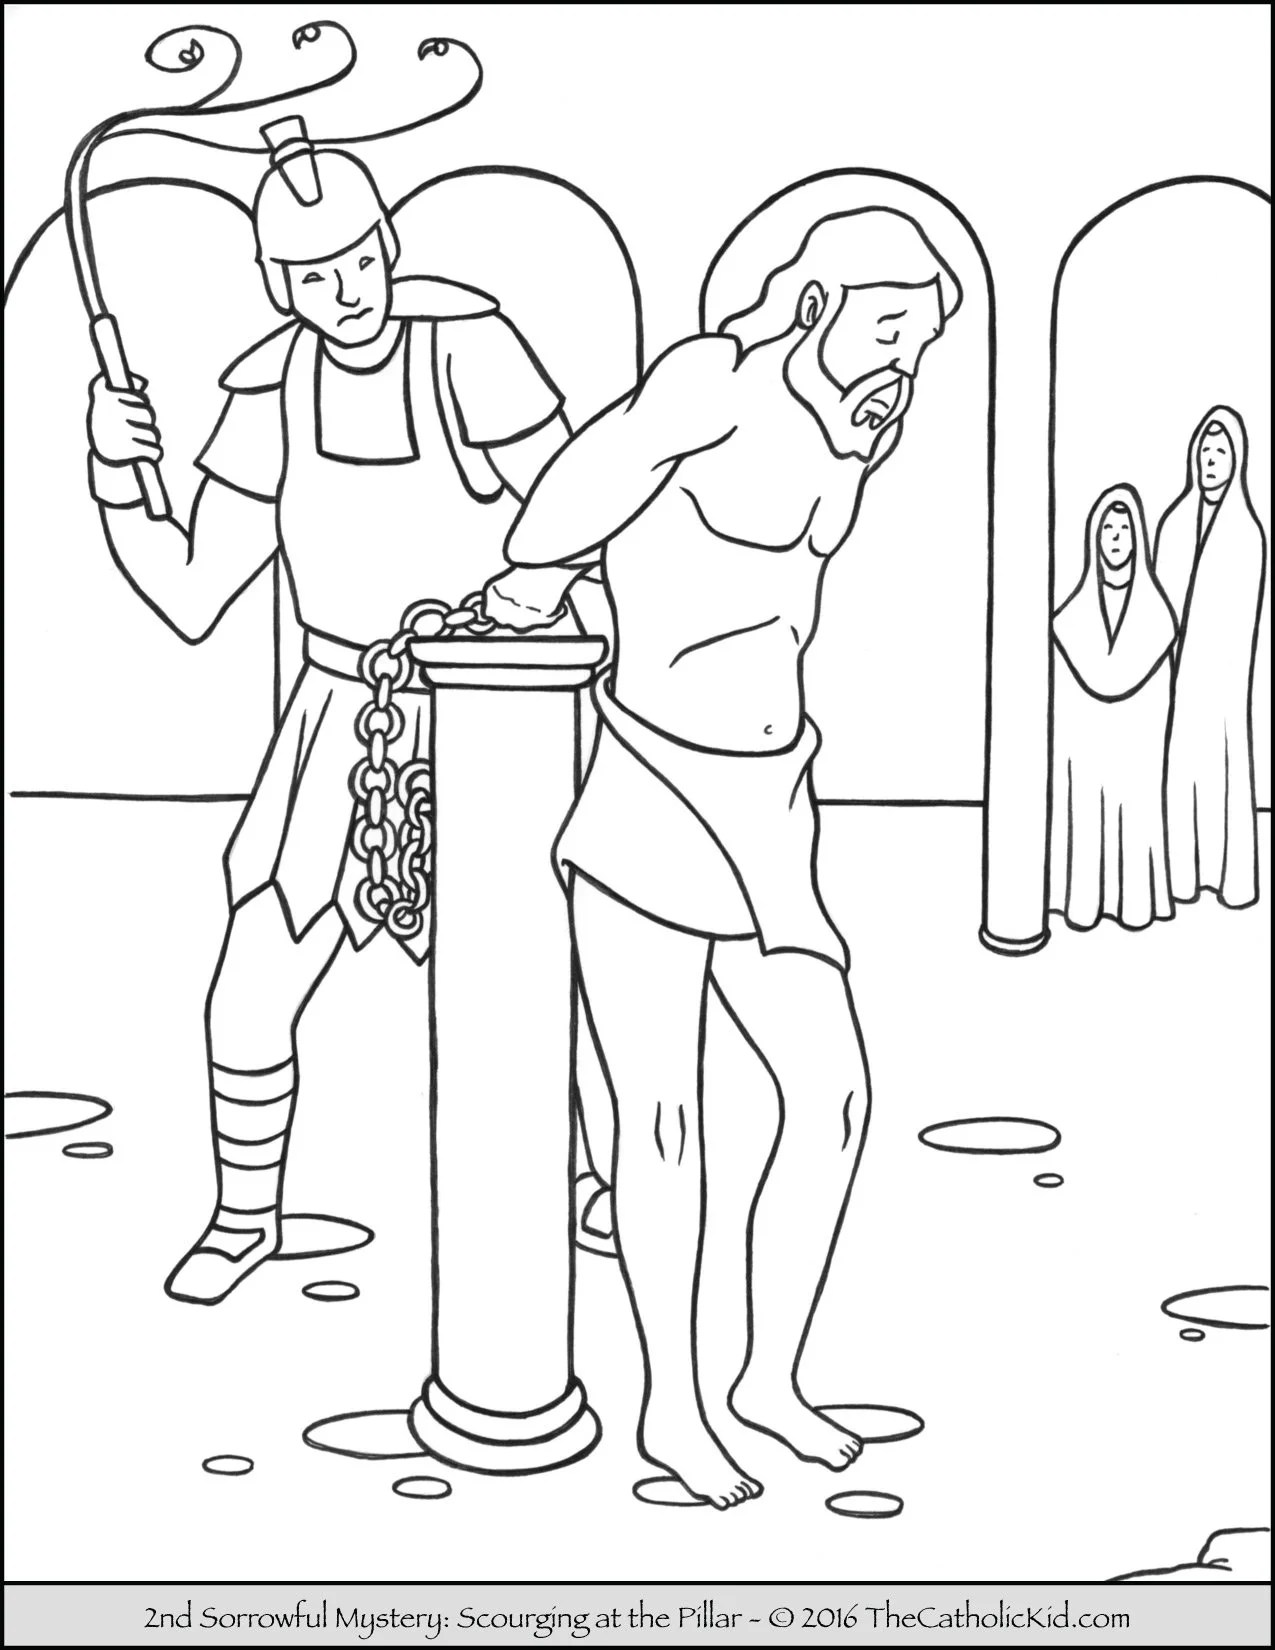 Sorrowful Mysteries Coloring Pages